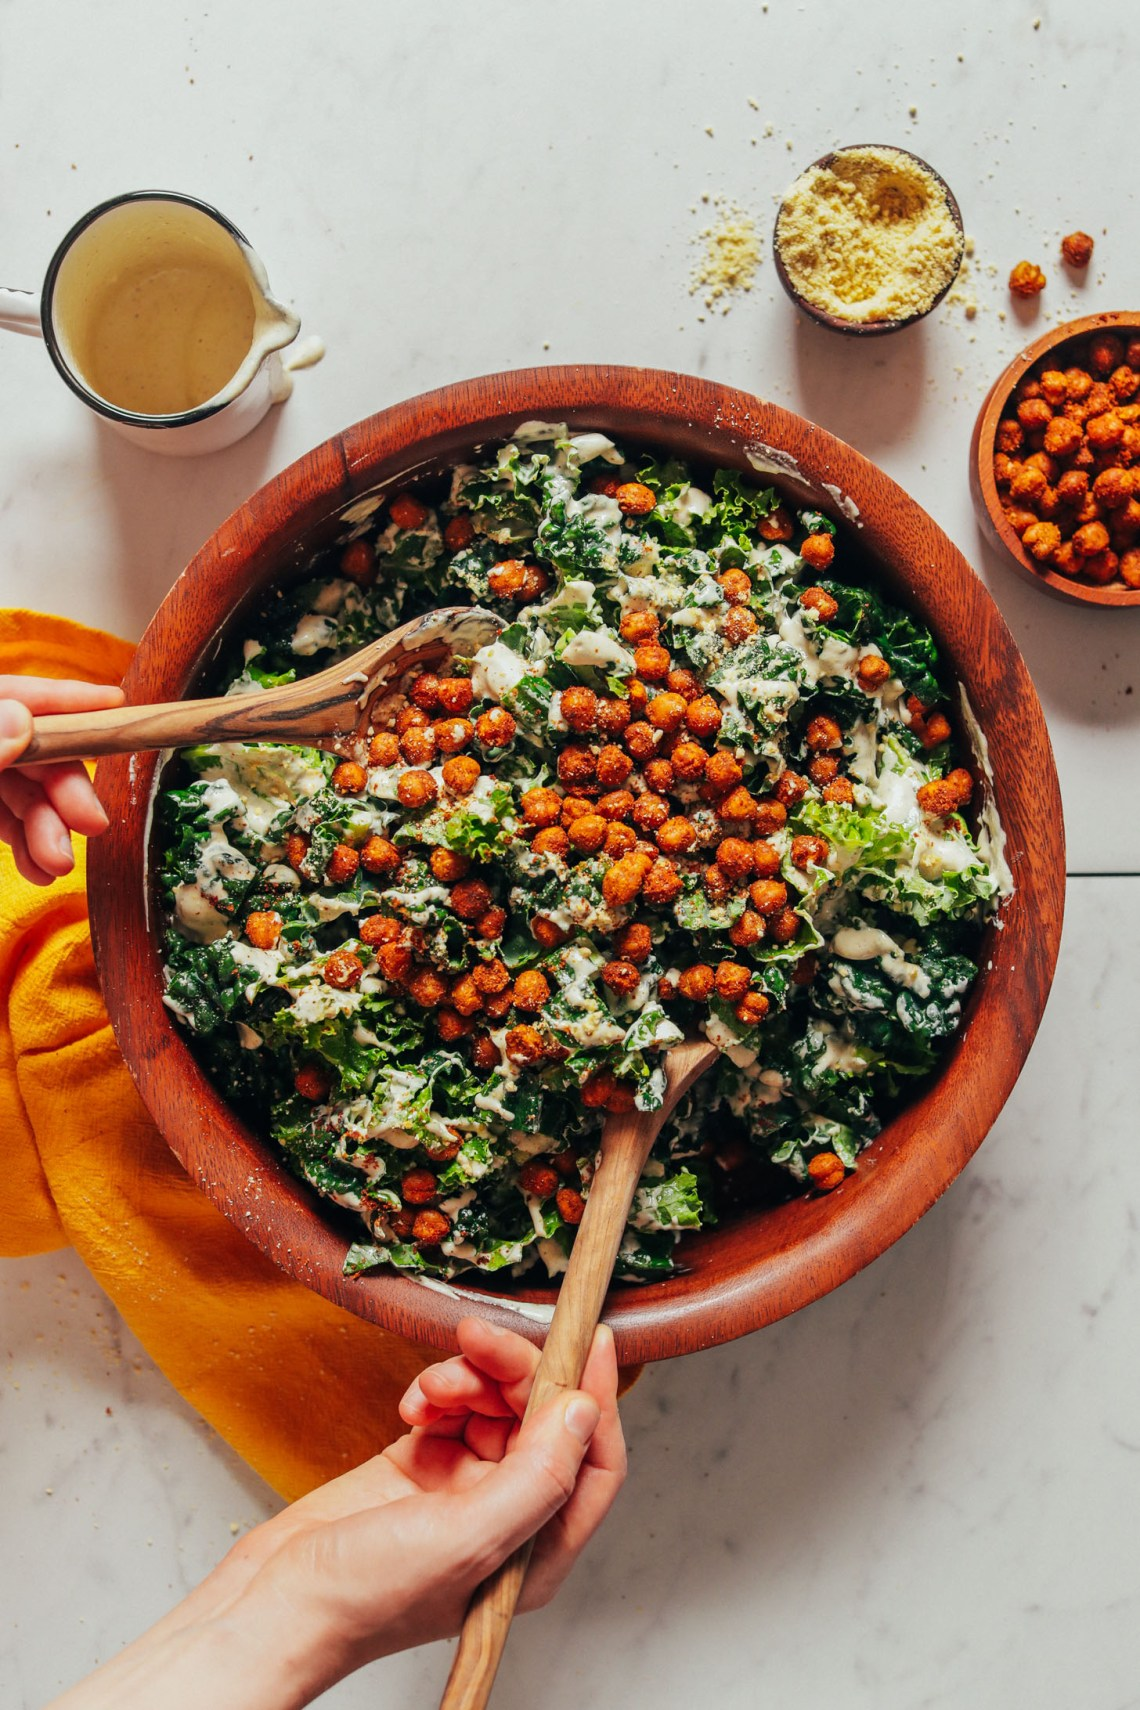 Using wooden salad spoons to toss a bowl of Chickpea Kale Salad topped with tandoori chickpeas